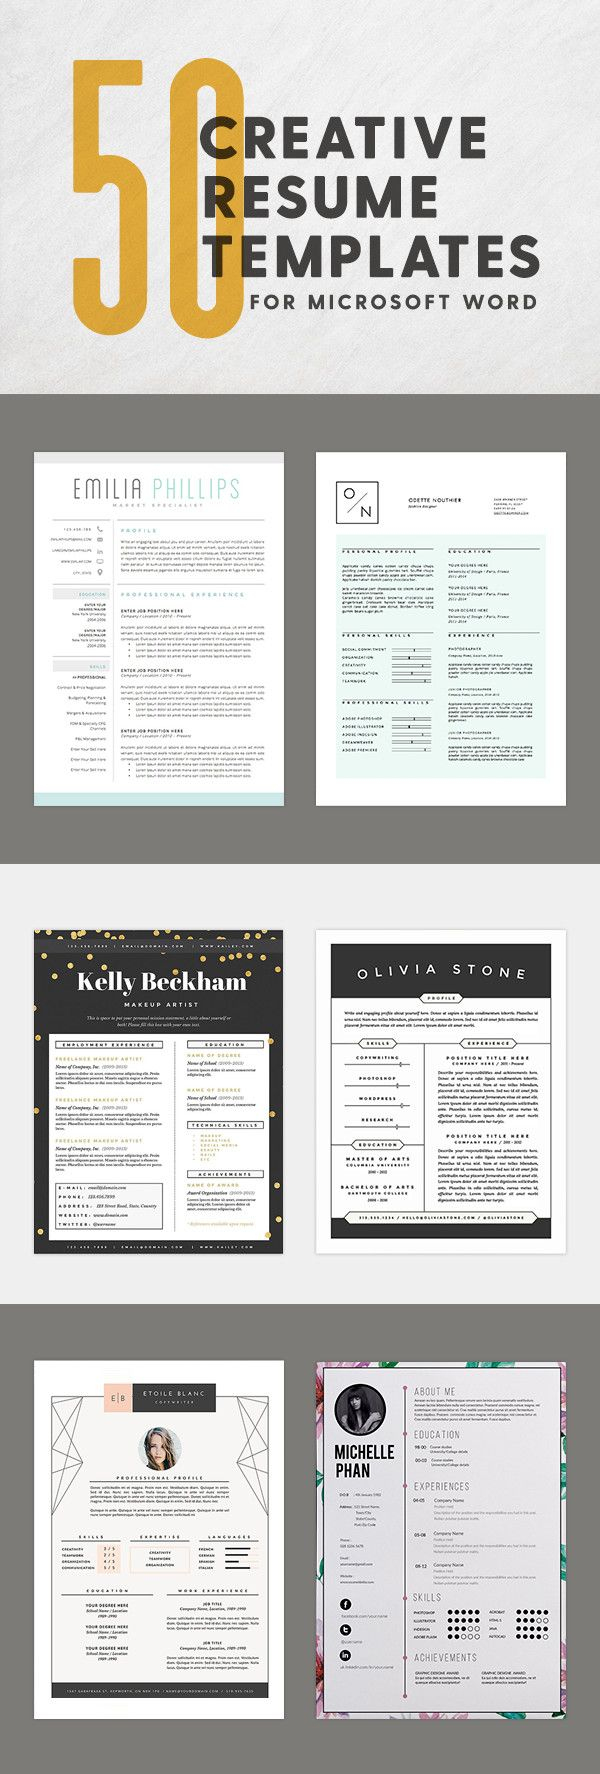 50 creative resume templates you wont believe are microsoft word - Best Resume Font